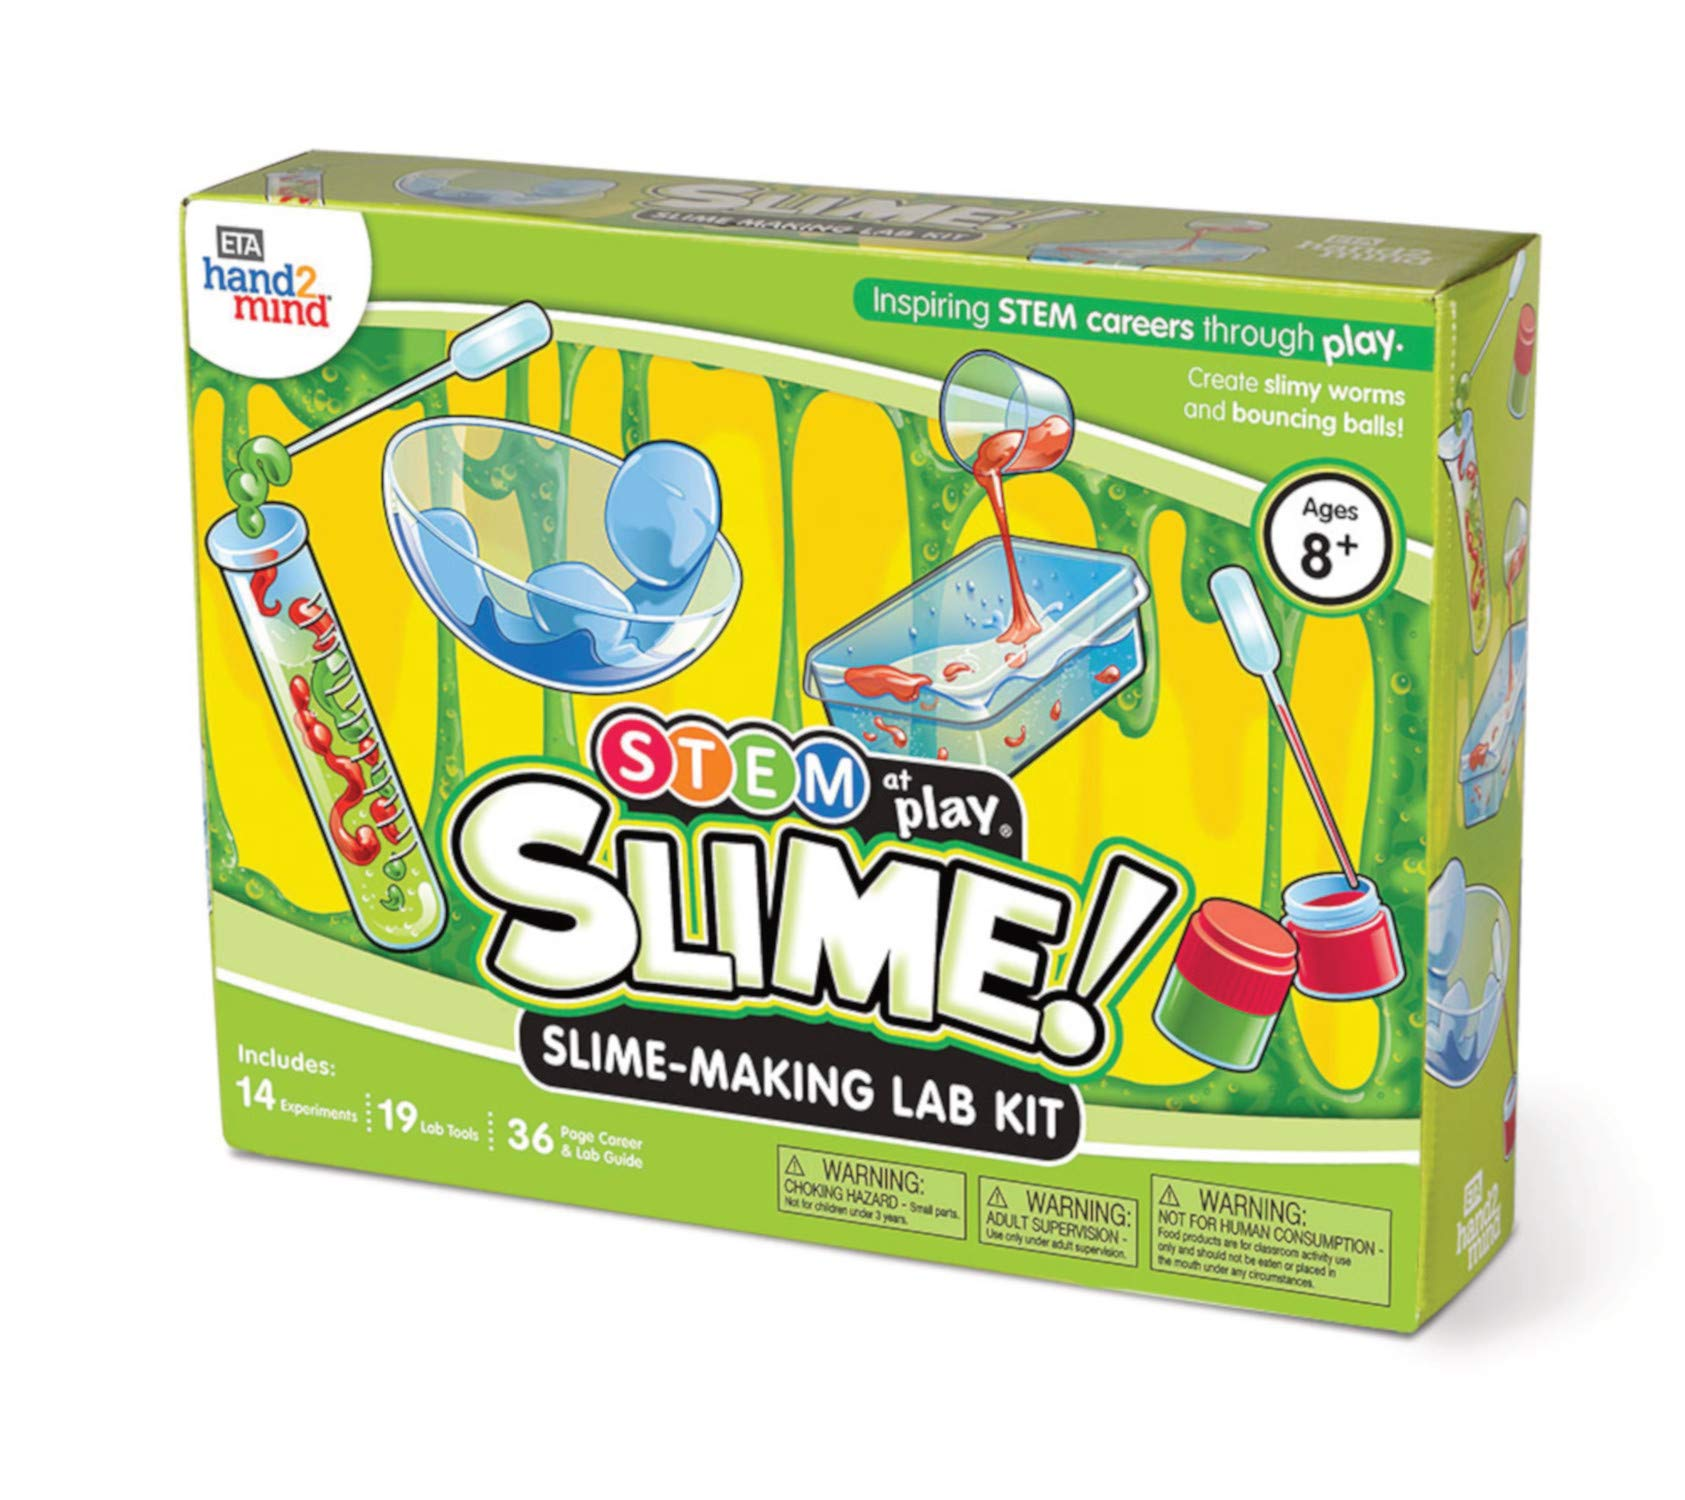 Slime! Science Slime Kit for Kids (Ages 8+) - Build 14+ STEM Career Experiments & Activities | Create DIY Slimy Worms, Bouncing Balls, & More | Educational Toys | STEM Authenticated